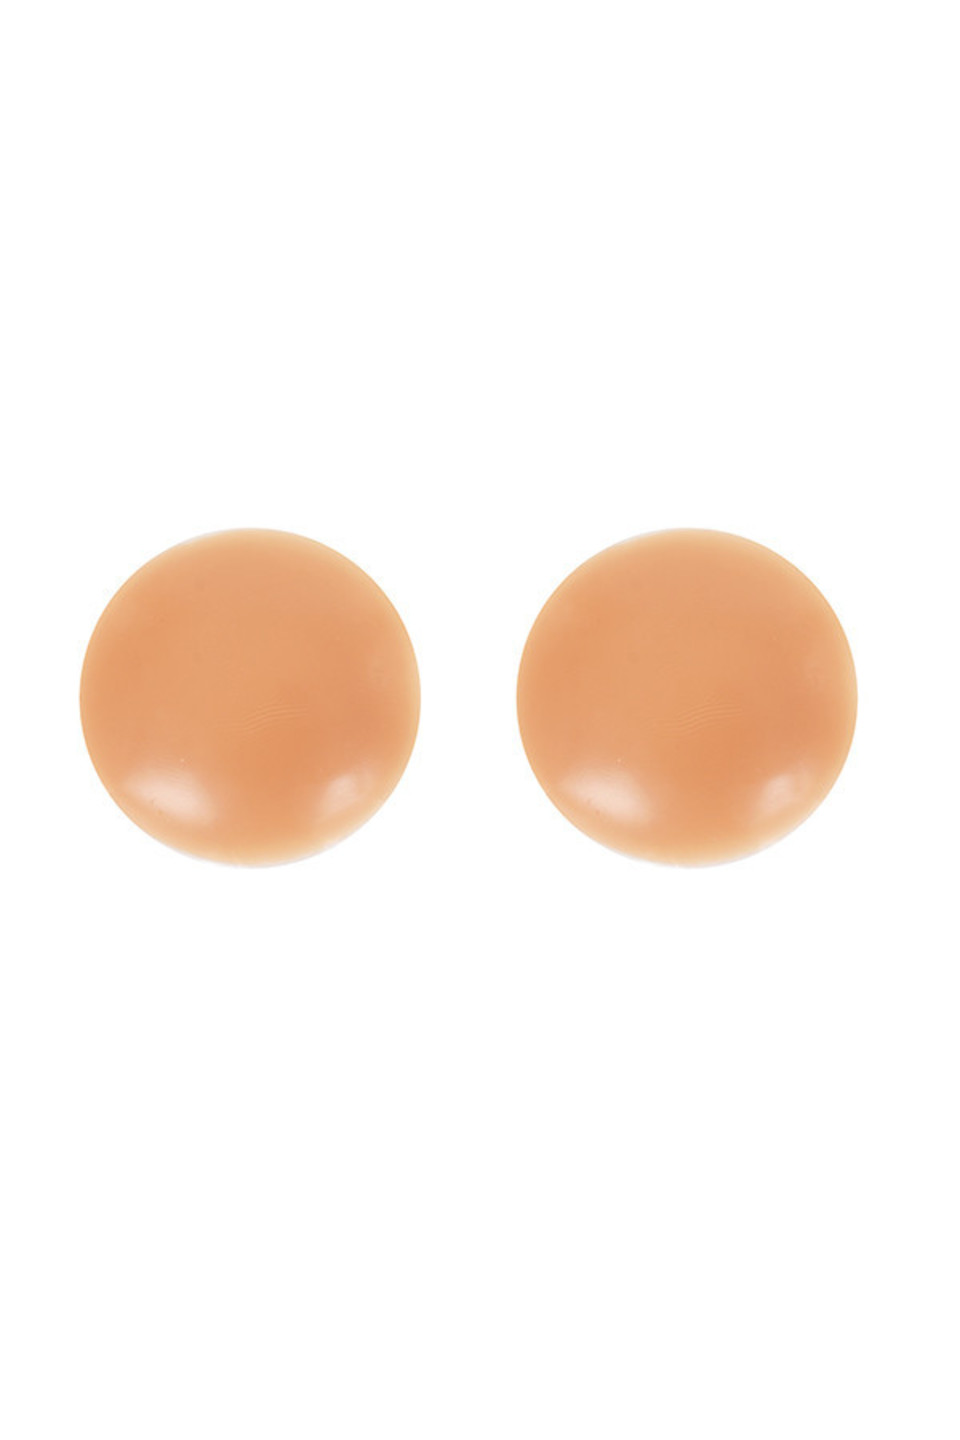 Silicon Dark Nude Nipple Covers